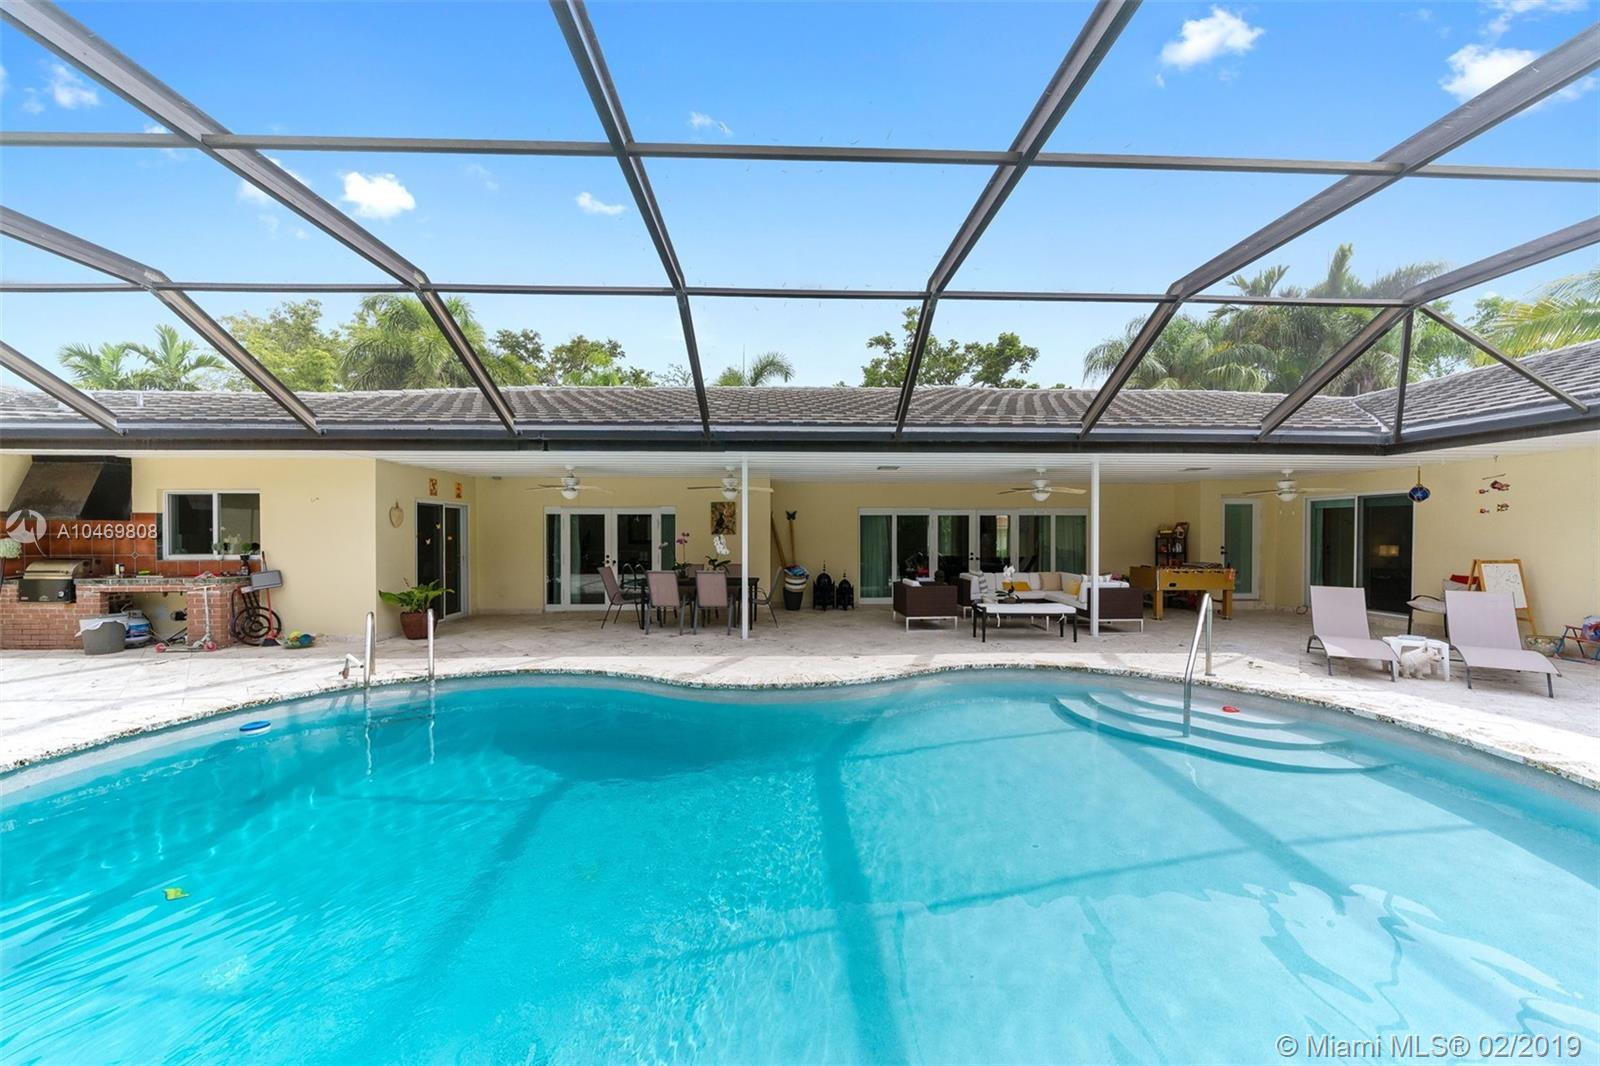 Ideal House For Entertaining With Large Living Areas, Formal Dining And Separate Family Room. Kitchen With Breakfast Bar Opens To Covered Patio And Screened Pool Area. Large Butler'S Pantry. Hallway Off The Kitchen Leads To Interior Laundry And 5Th Bedroom And Bath. The Bedroom Has Its Own Entrance Both From Side Yard And Pool Area, Ideal For Guests Or Live-In. Four Bedrooms On Other Side Of House. Large Master With Walk-In Closet, Original Master With Private Access To Bathroom. Two Children'S Rooms. Roof 2014.